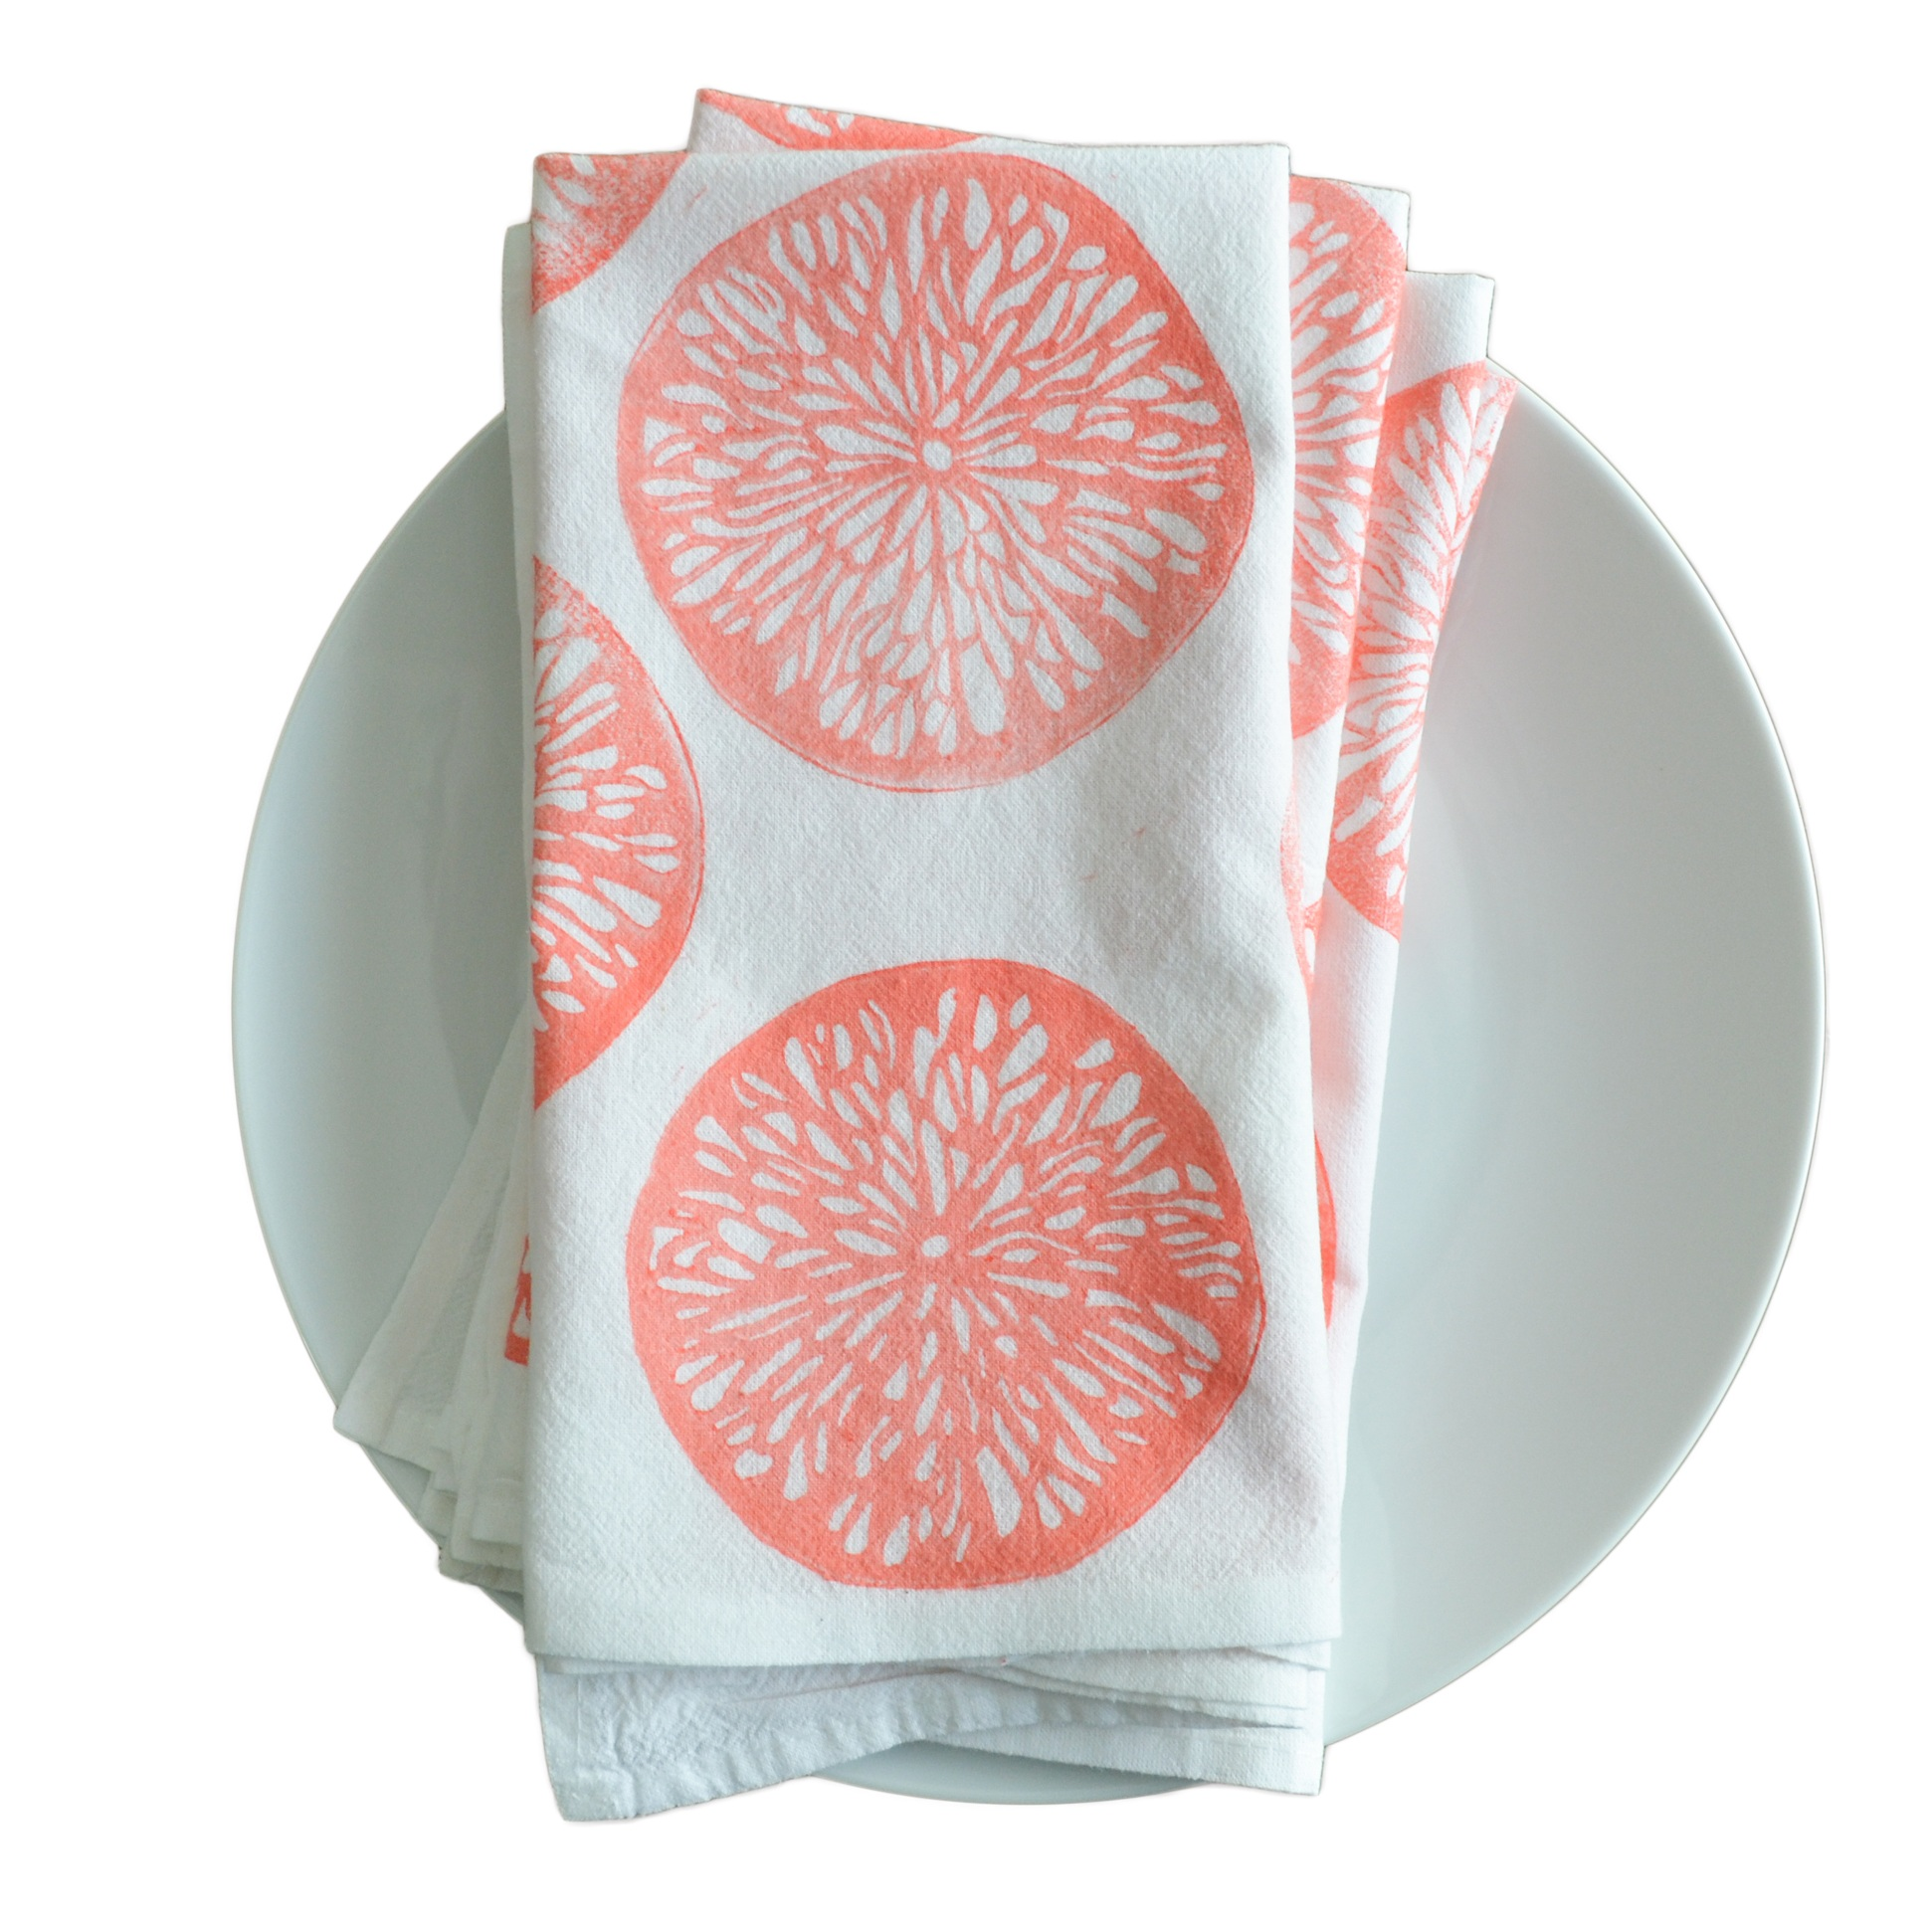 Lemonslice-Napkin-Set_02_white.jpg